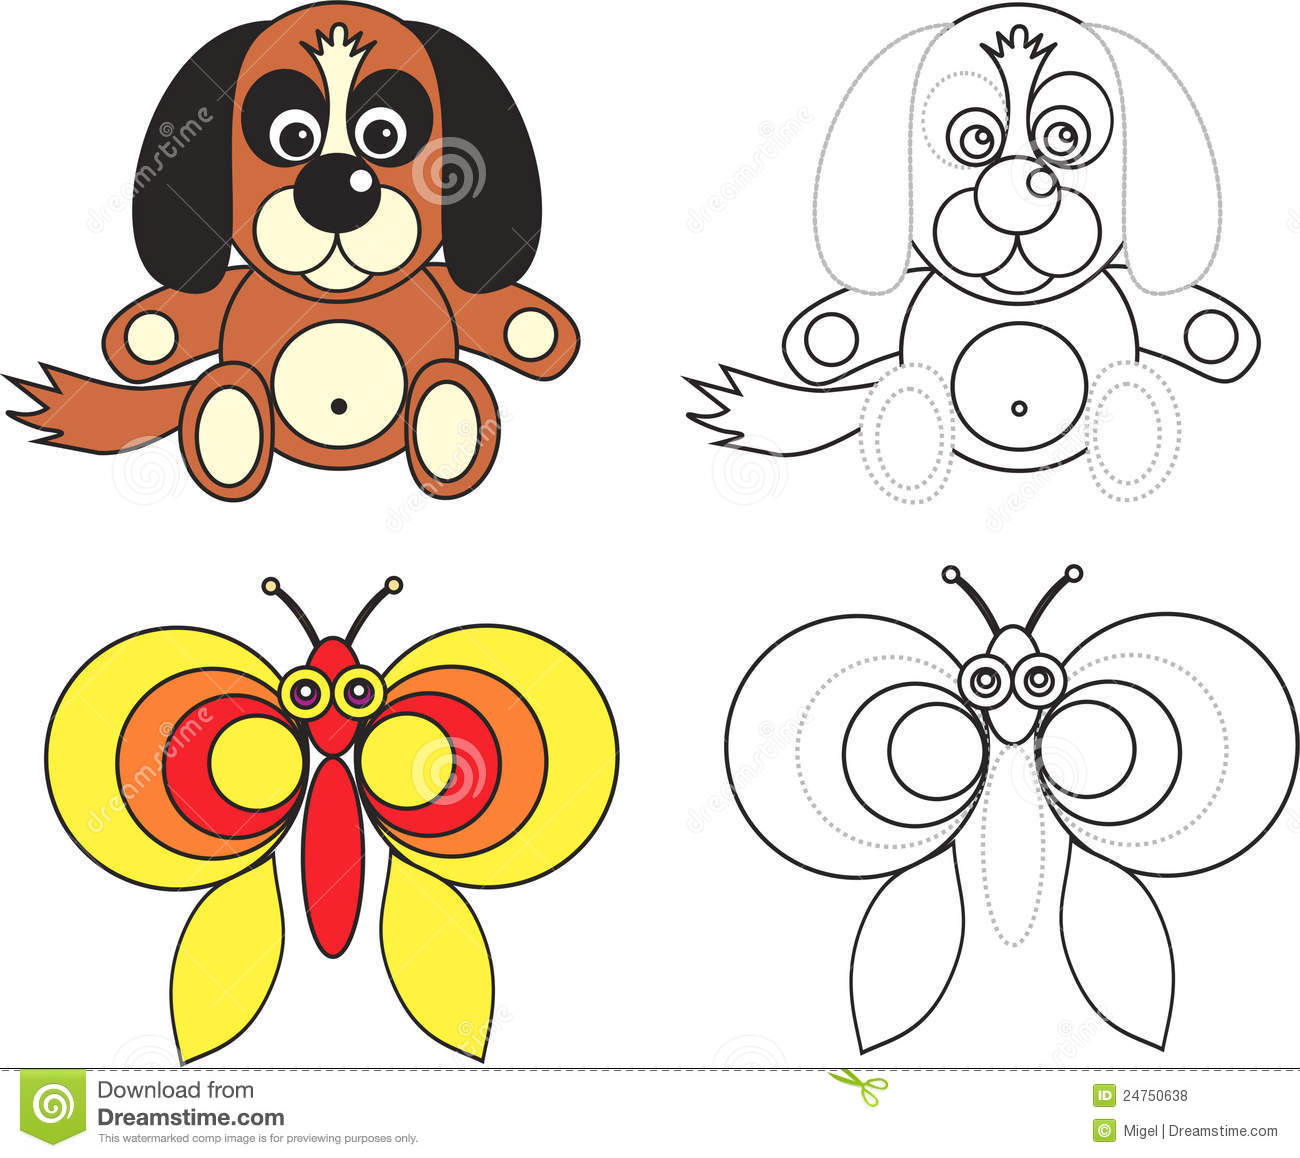 coloring page book for kids elephant butterfly royalty free - Kids Color Book